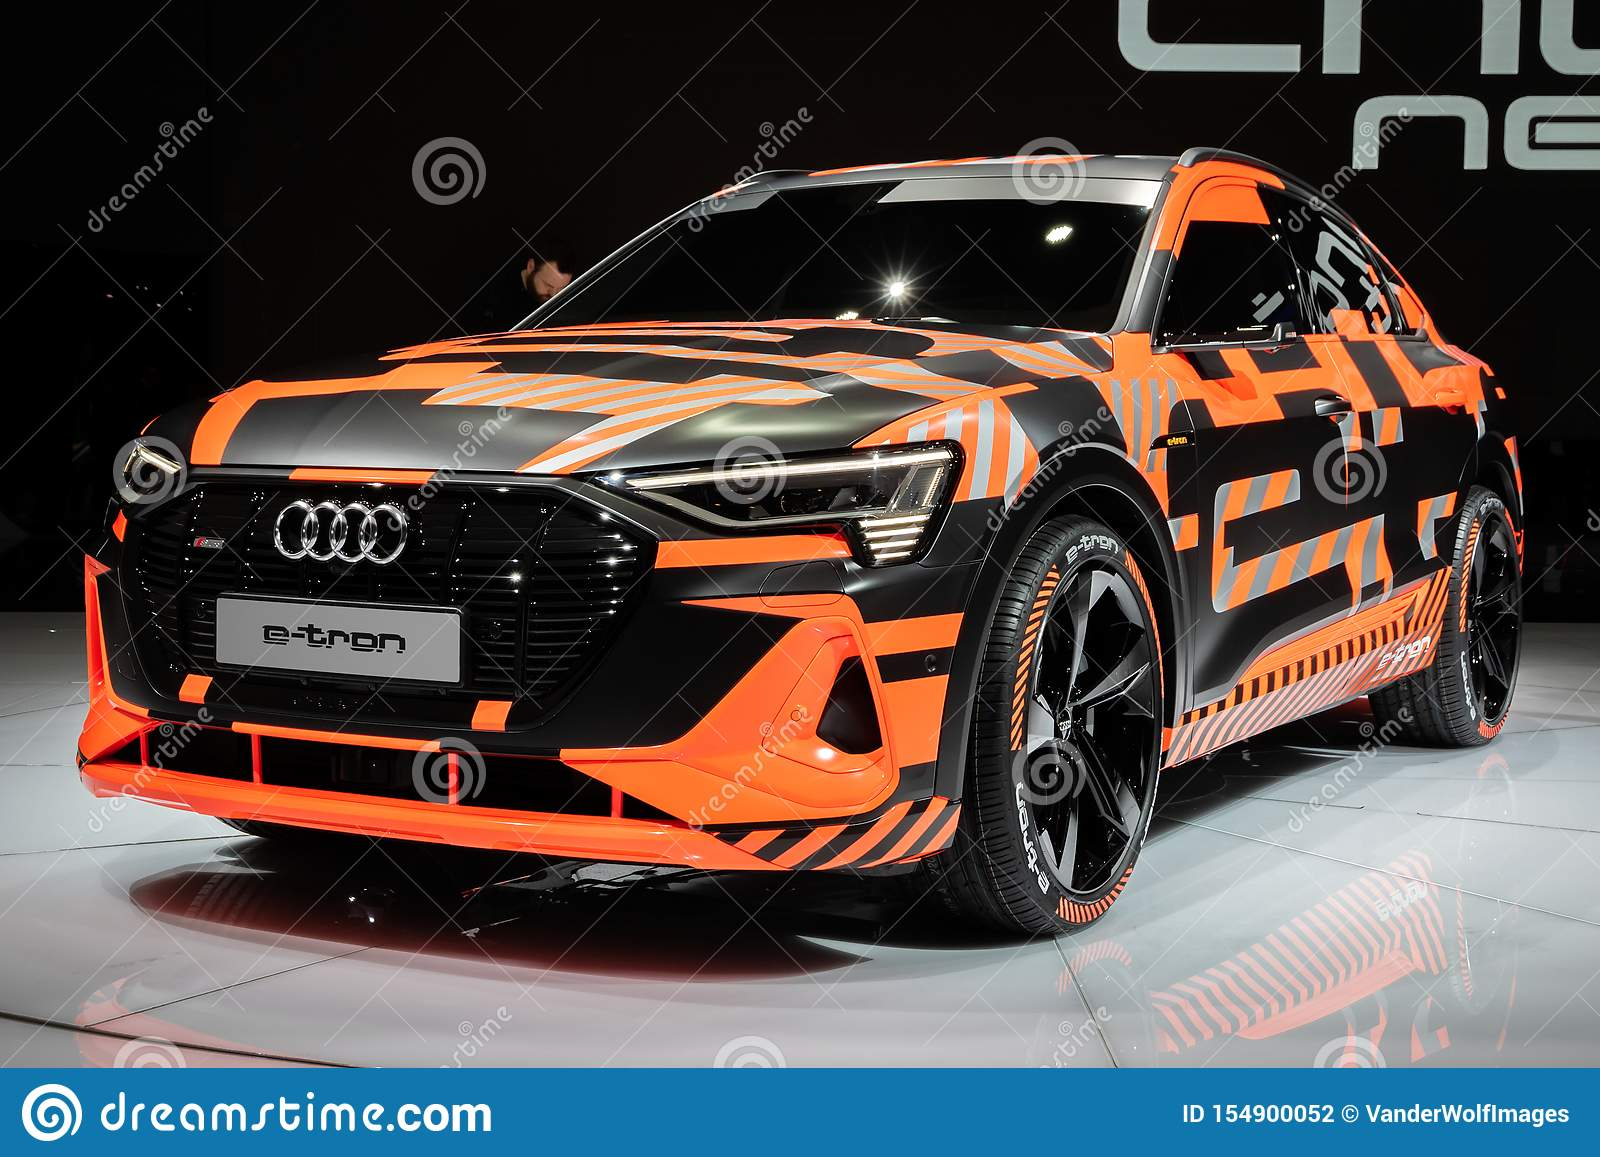 Audi E Tron Sportback Electric Suv Coupe Car Editorial Photography Image Of Camouflage Sport 154900052